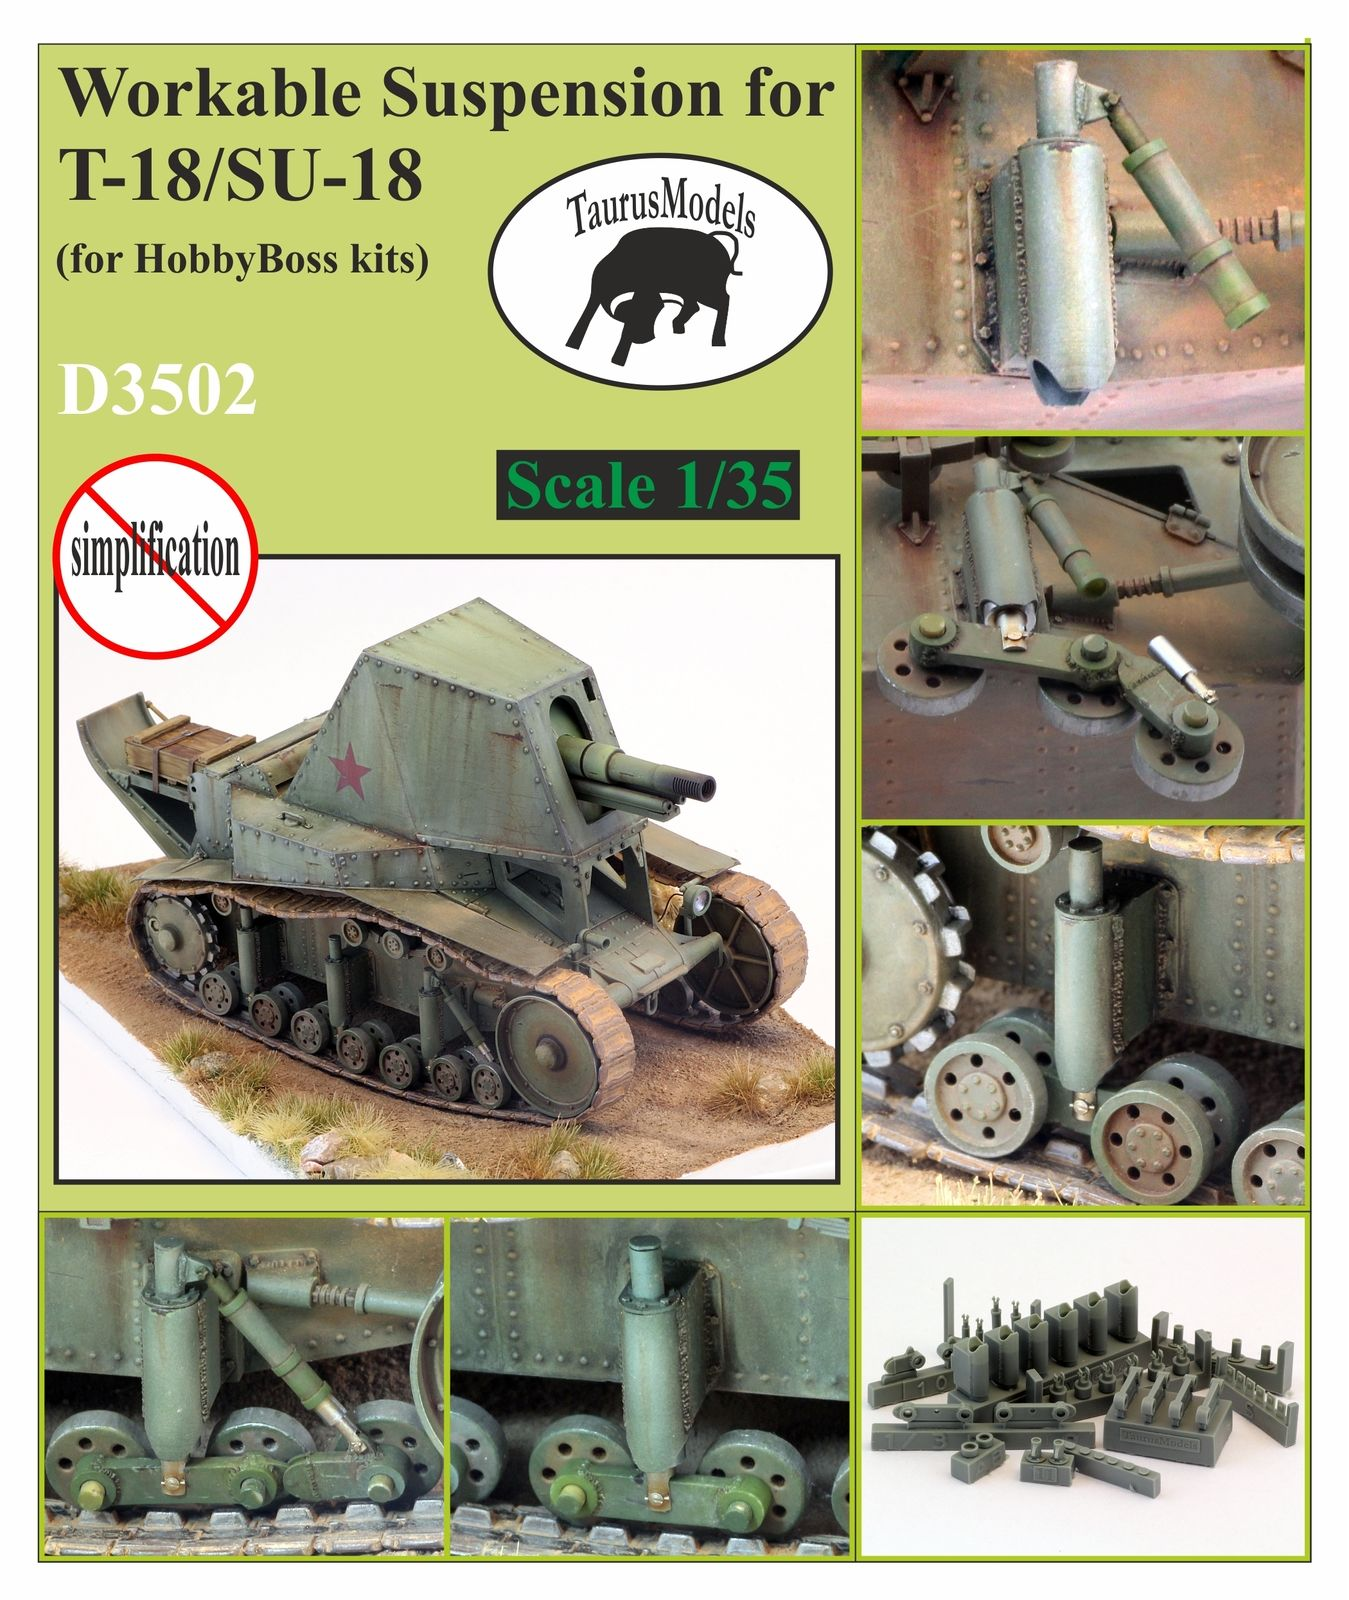 D3502 Suspension for T-18/SU-18 Image